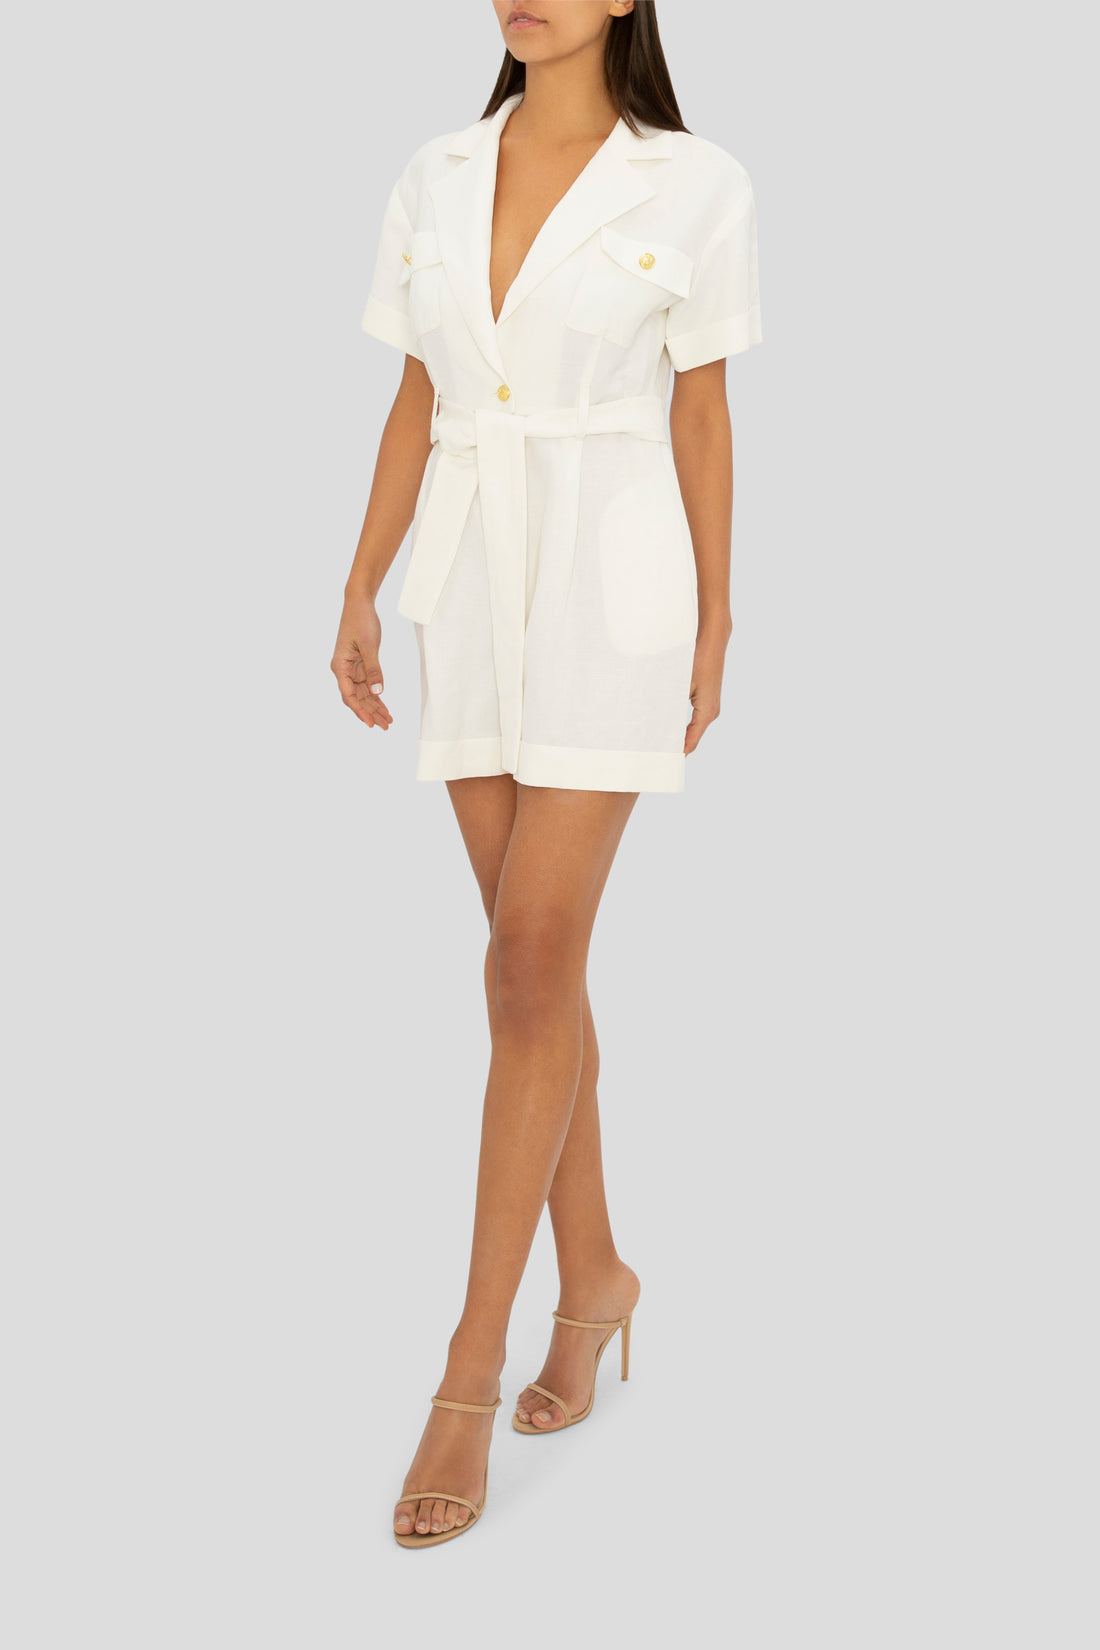 THE WHITE PLAYSUIT